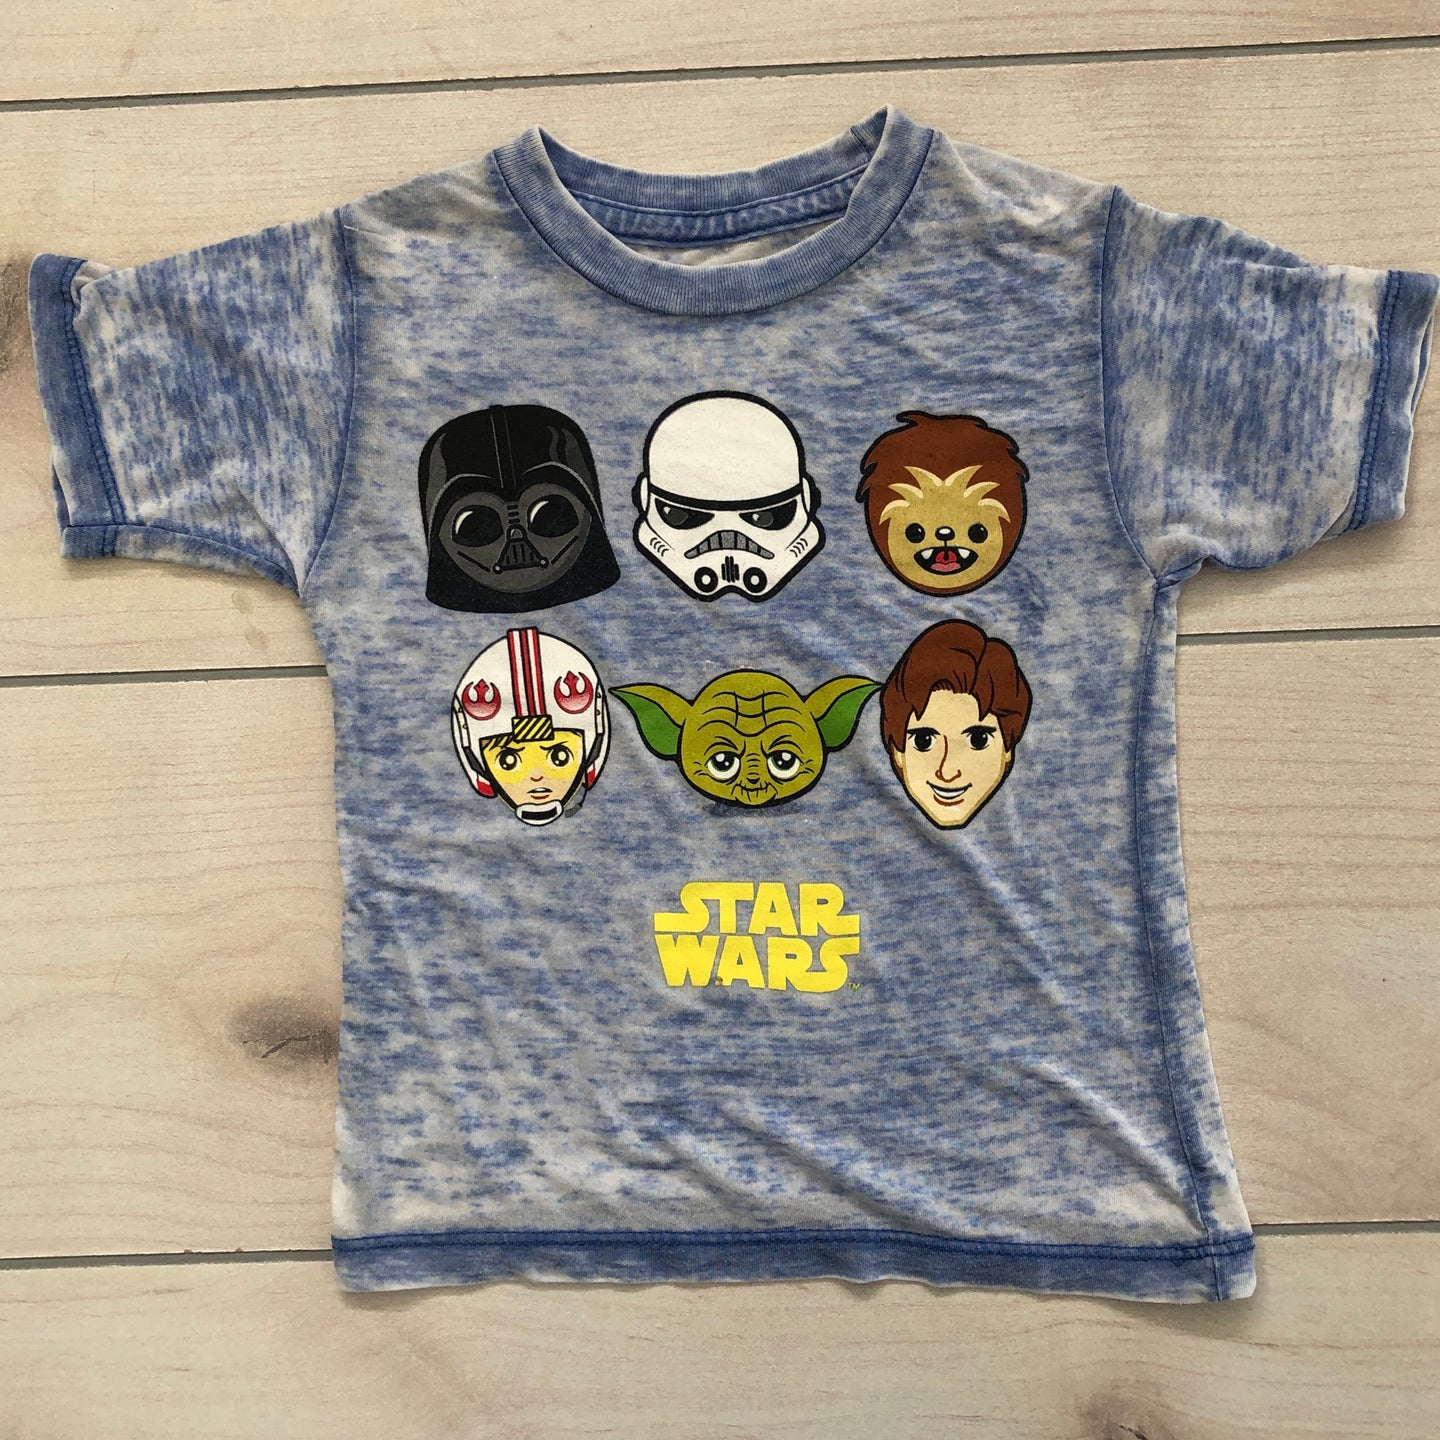 Star Wars T Shirt Size 2